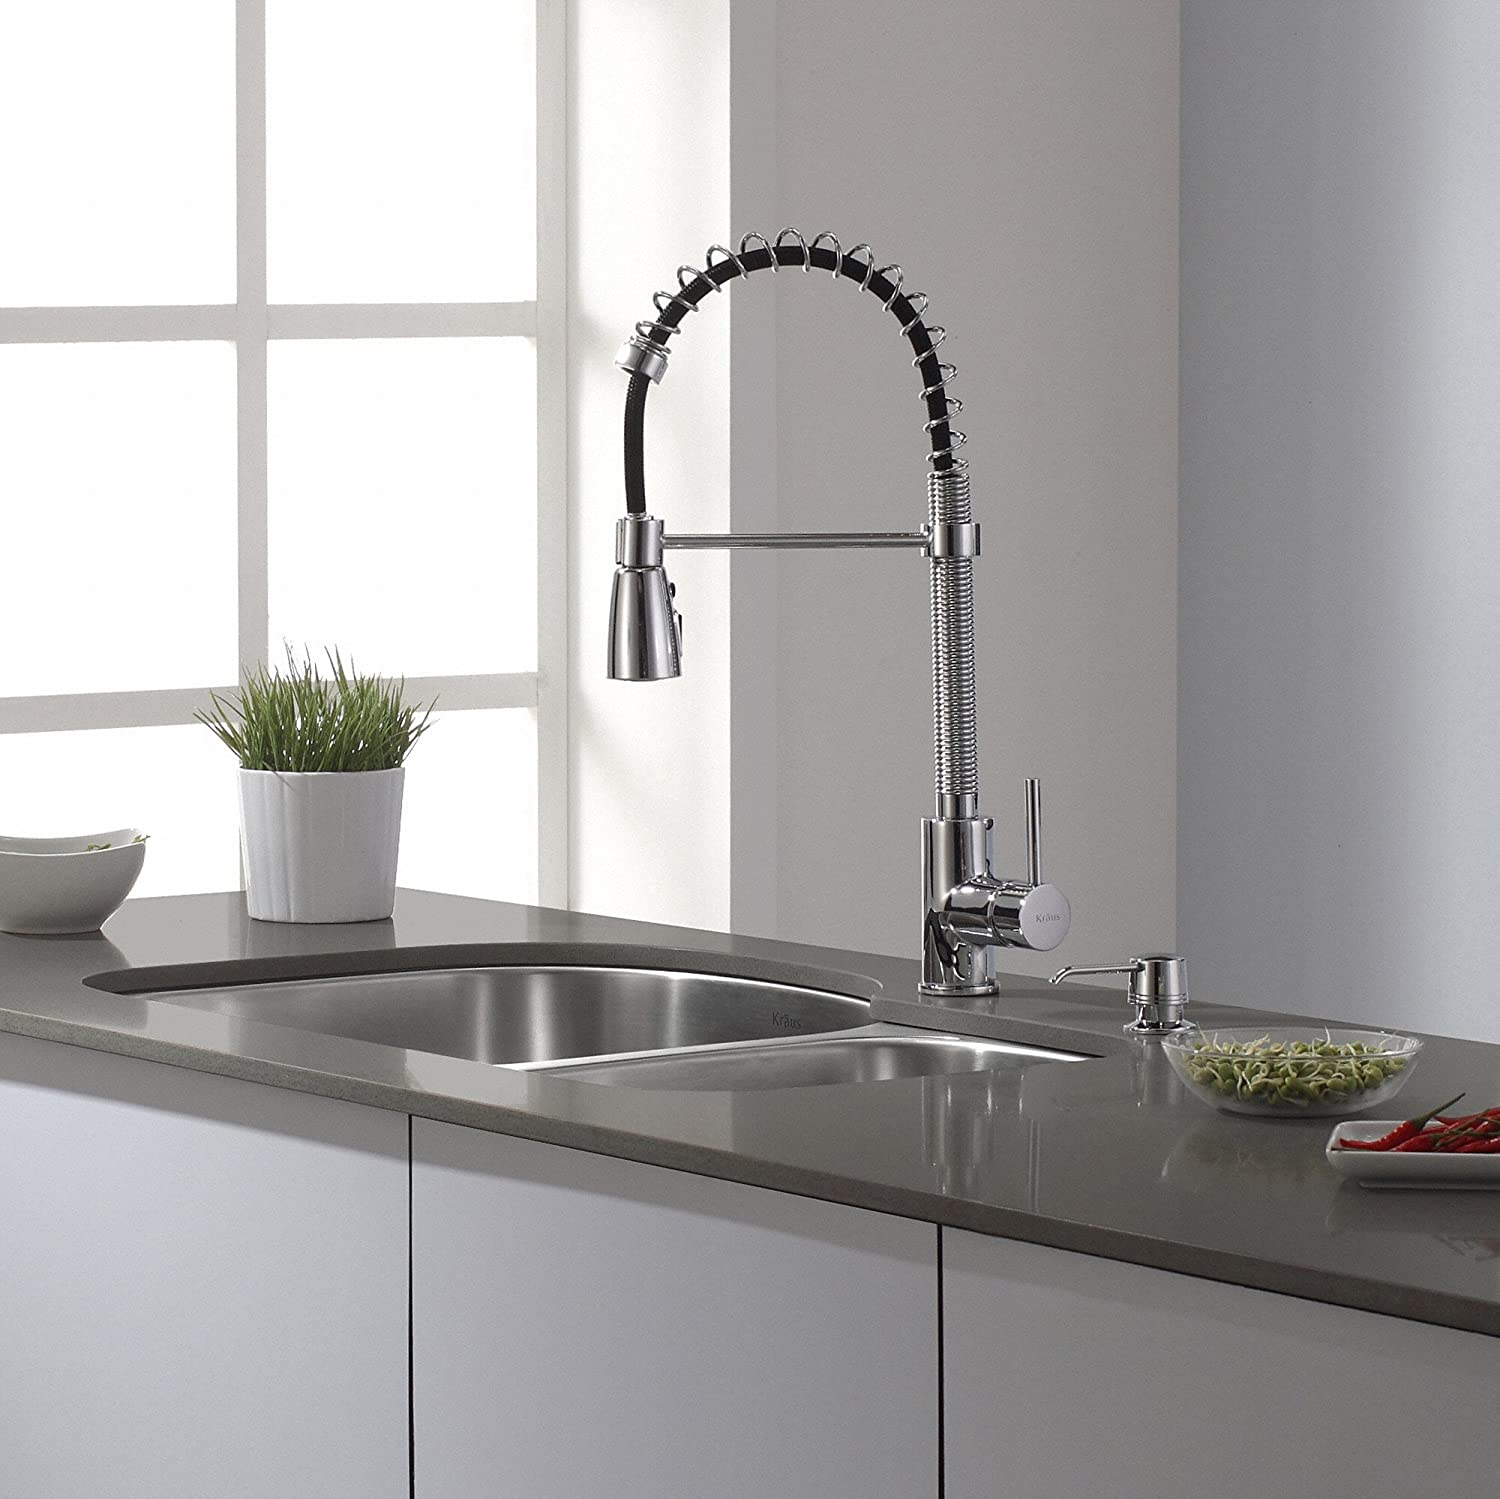 Kraus KPF-1612 Single Lever Pull Down Kitchen Faucet Chrome - Touch ...